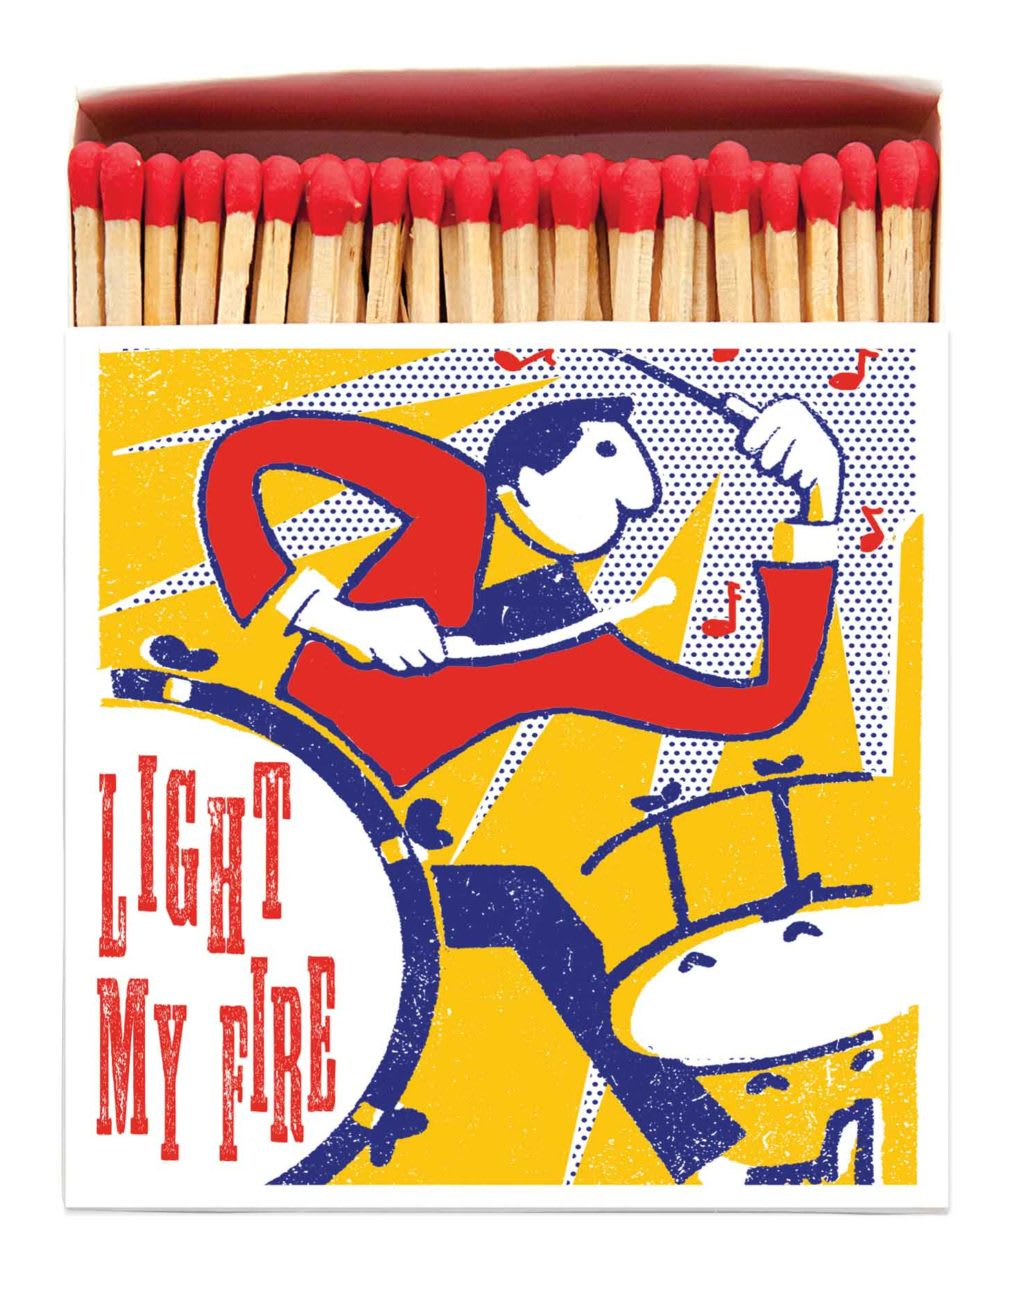 Archivist Long Luxury 'Light My Fire' Drummer Matches in a Square Yellow Box